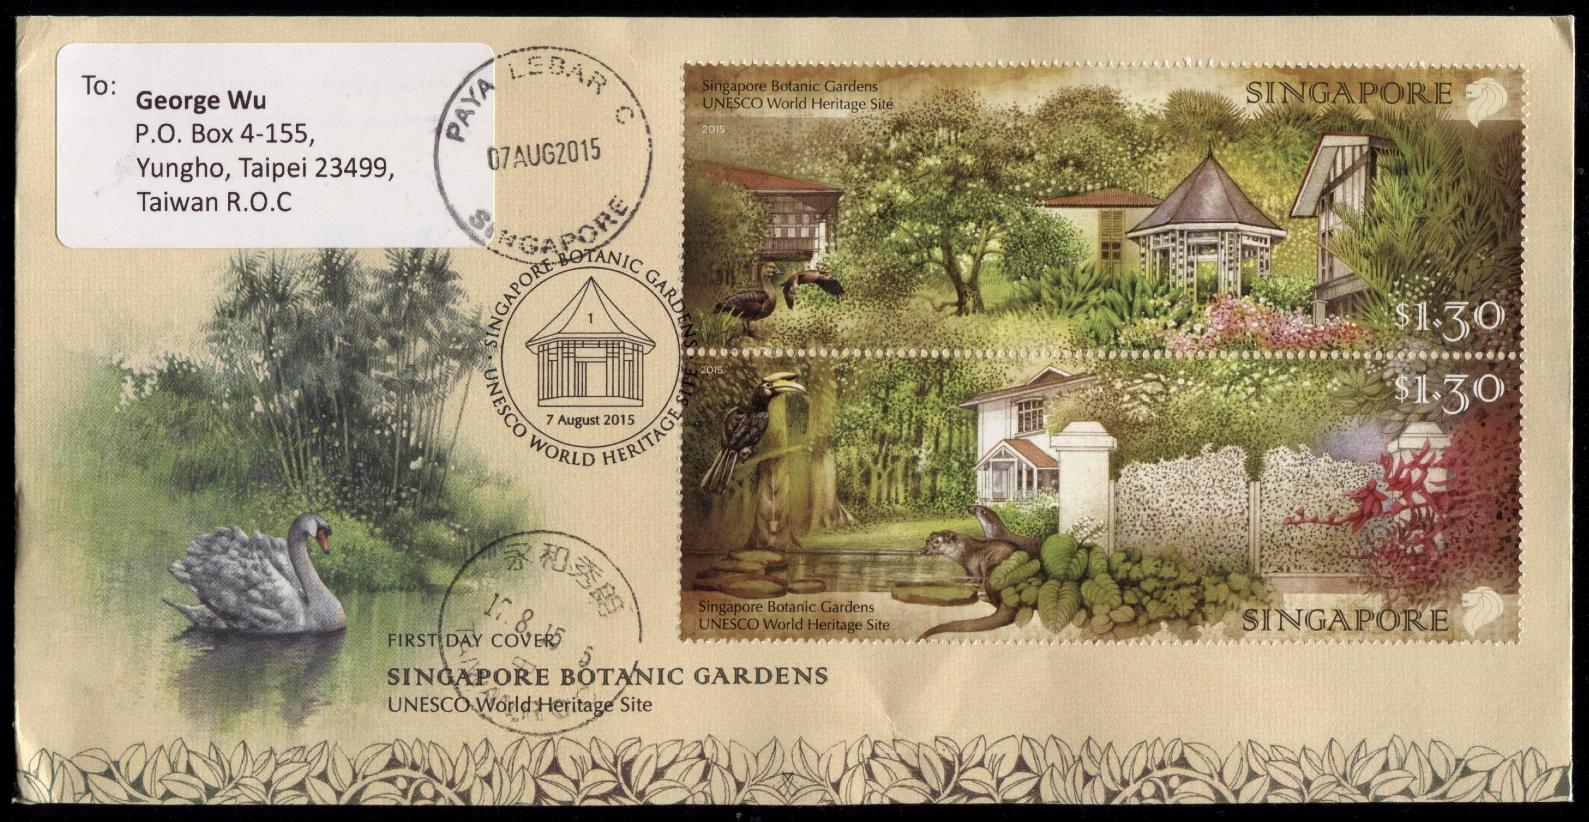 Singapore Botanic Gardens FDC, posted on 07 August 2015 from Paya Lebar to Taipei with arrival postmarked on 17 August 2015.